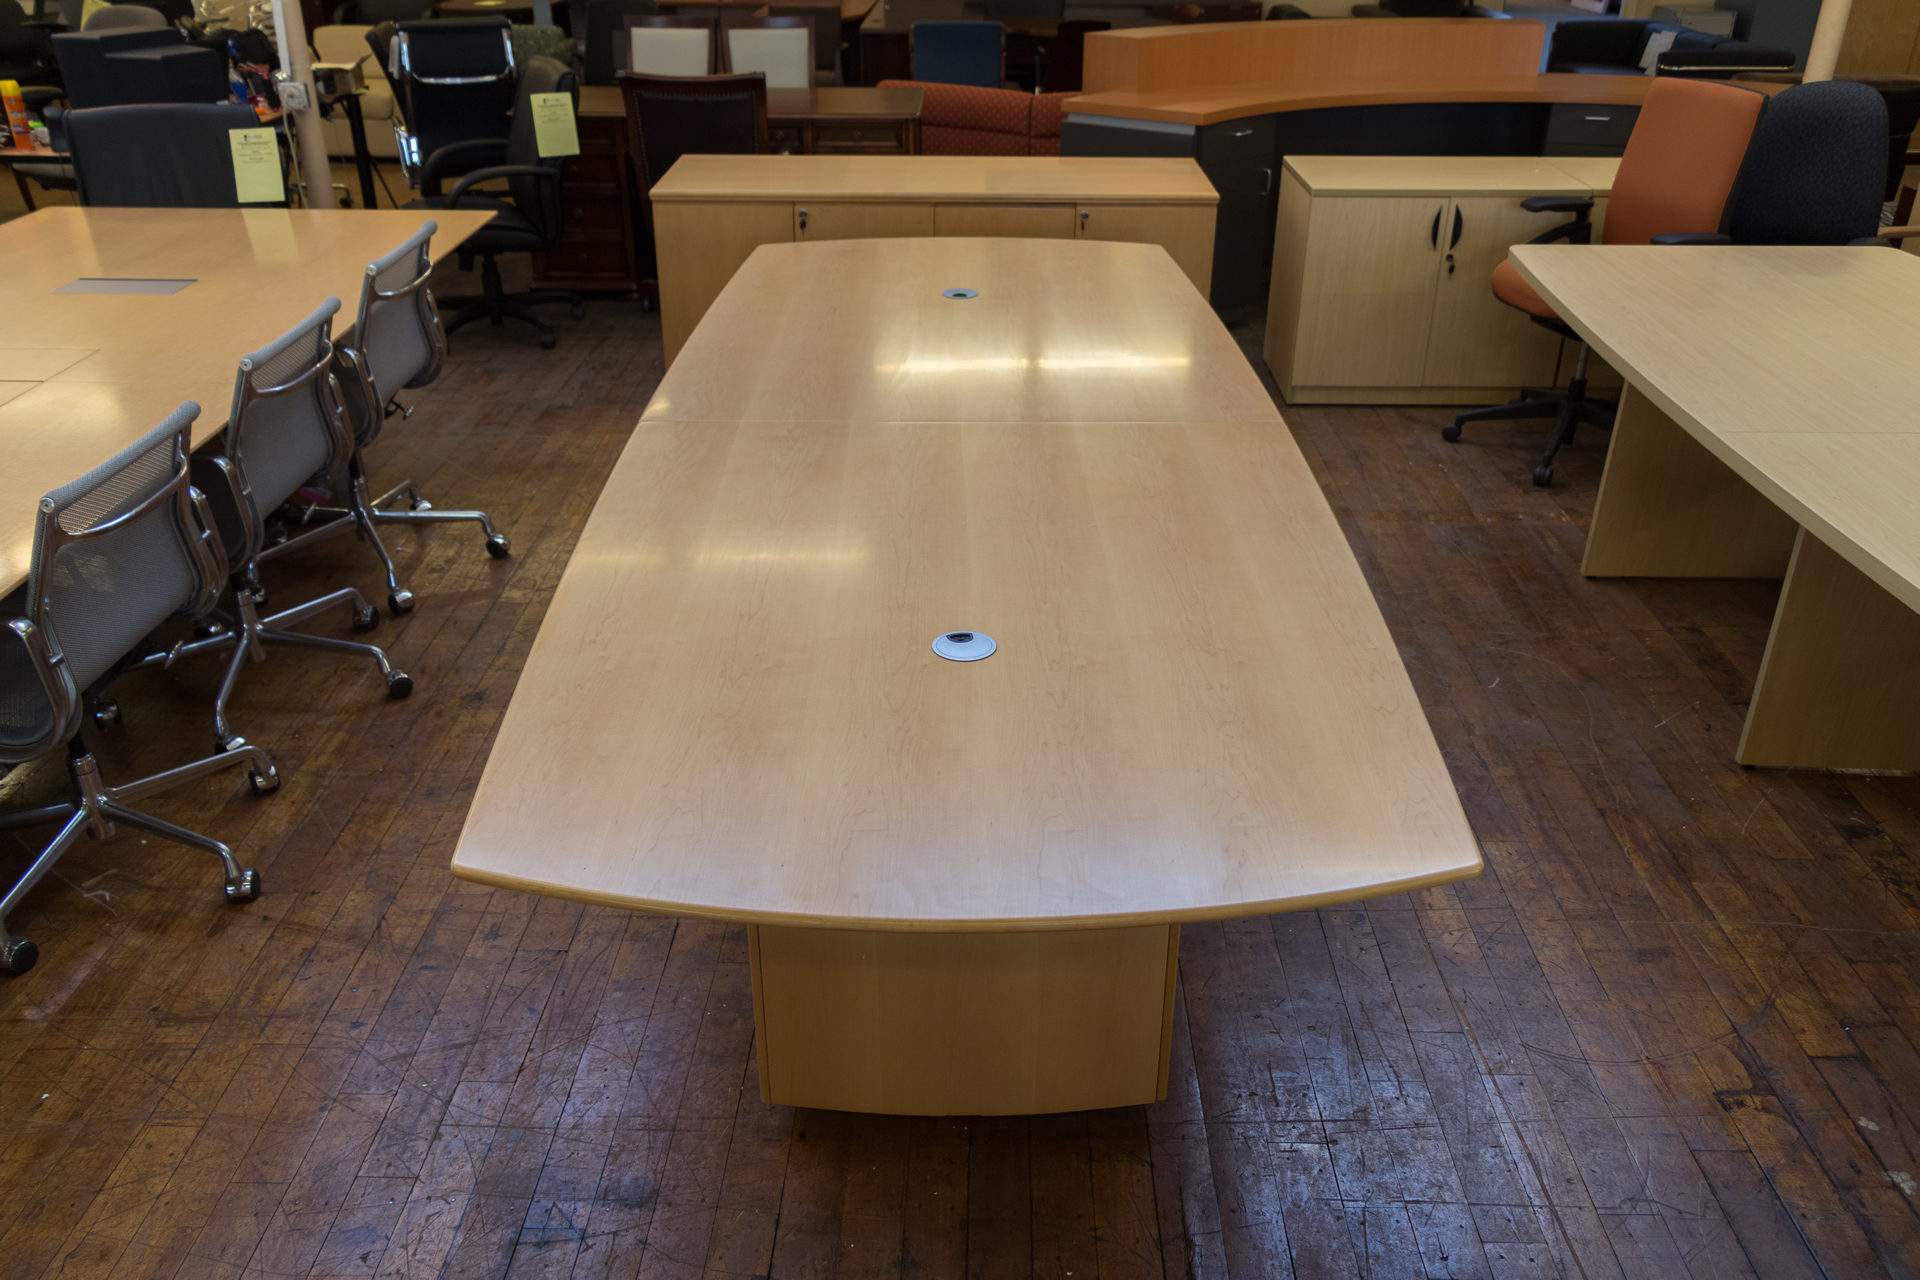 peartreeofficefurniture_peartreeofficefurniture_peartreeofficefurniture_peartree-sienna-series-boat-shaped-wood-conference-table-1.jpg